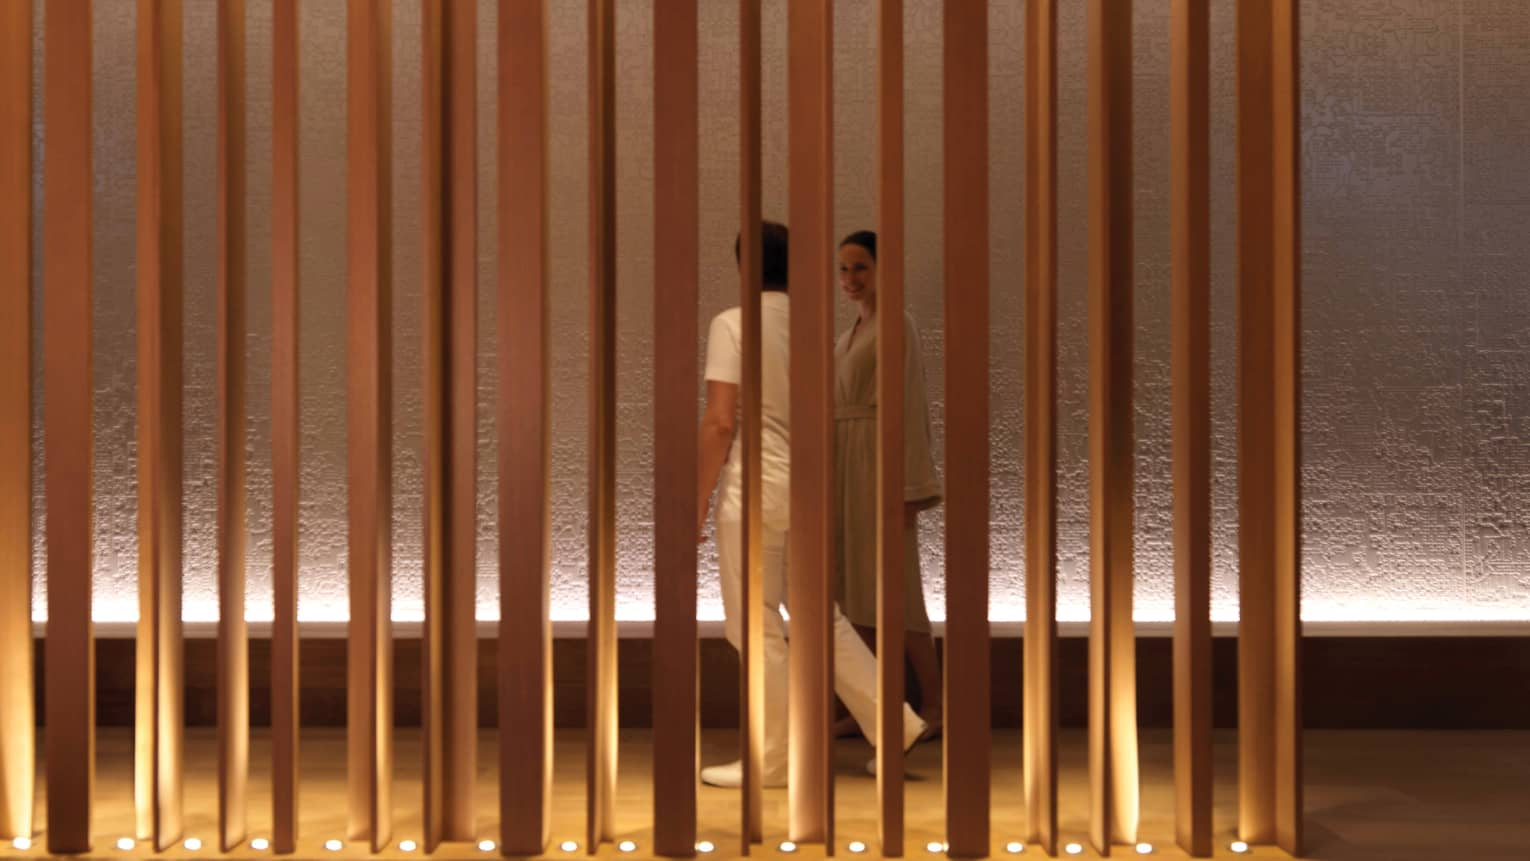 Spa staff, woman in white bathrobe walk down hall behind panel wall with lights